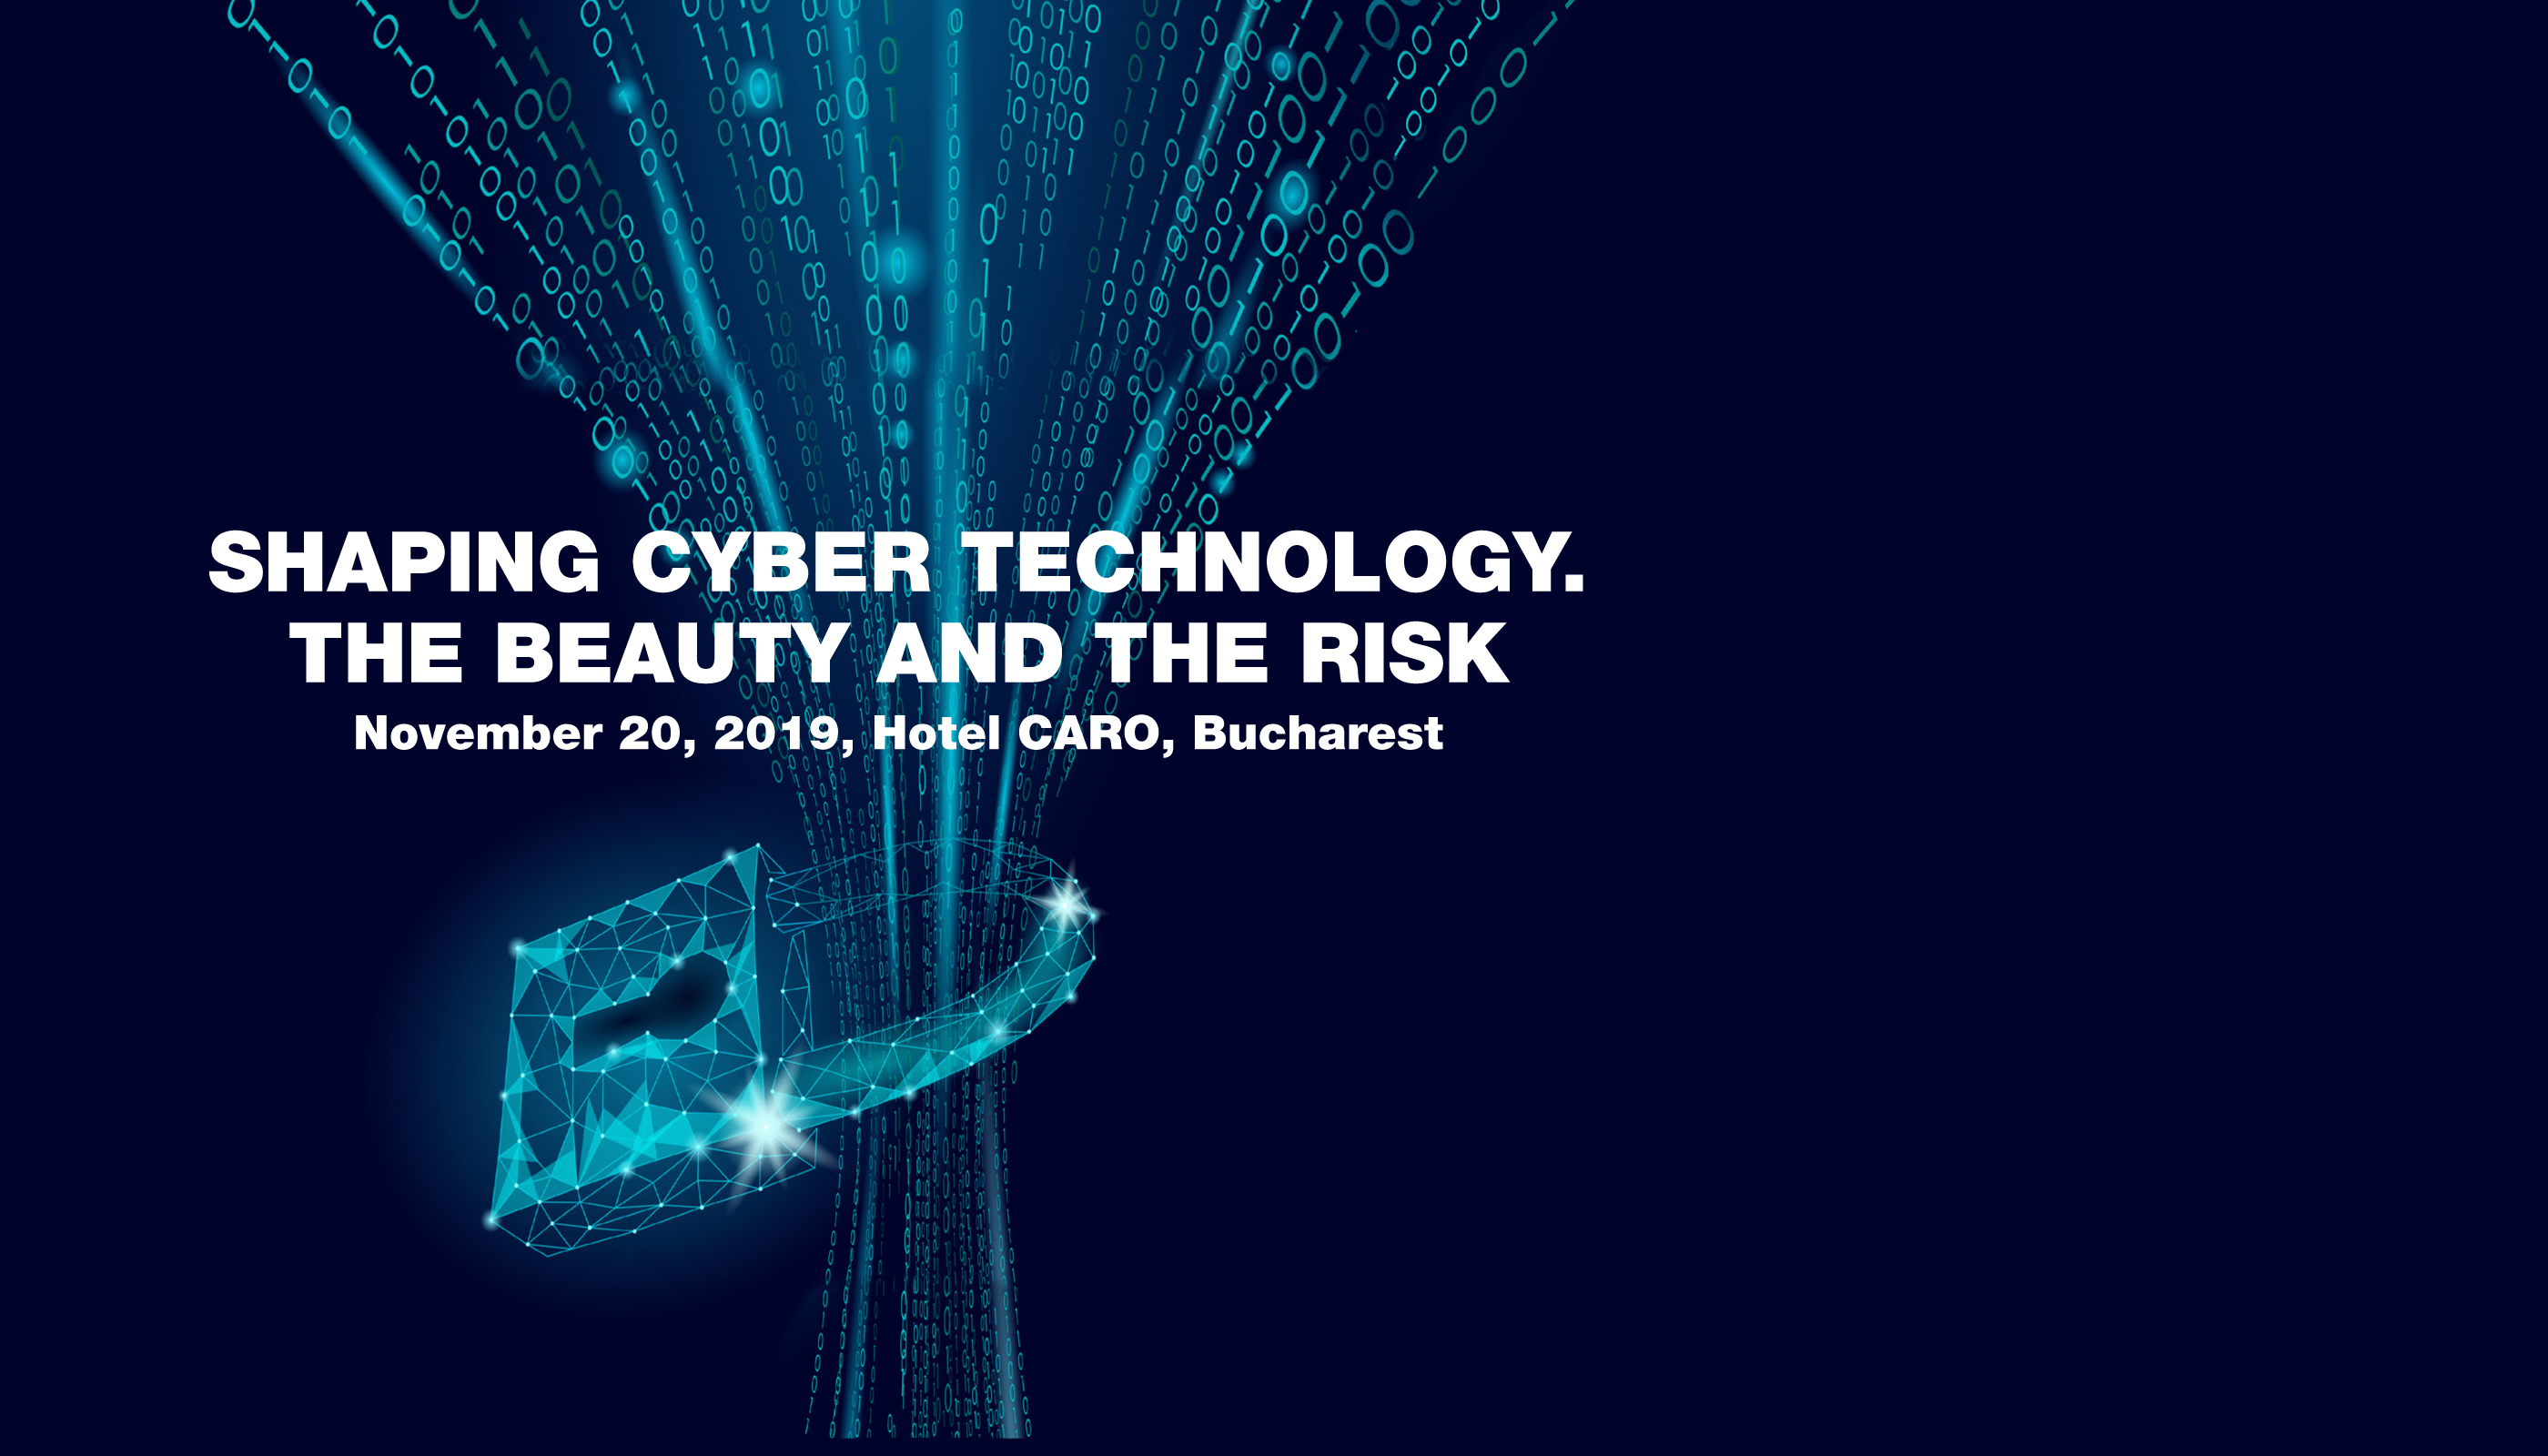 SHAPING CYBER TECHNOLOGY  THE BEAUTY AND THE RISK - Revista